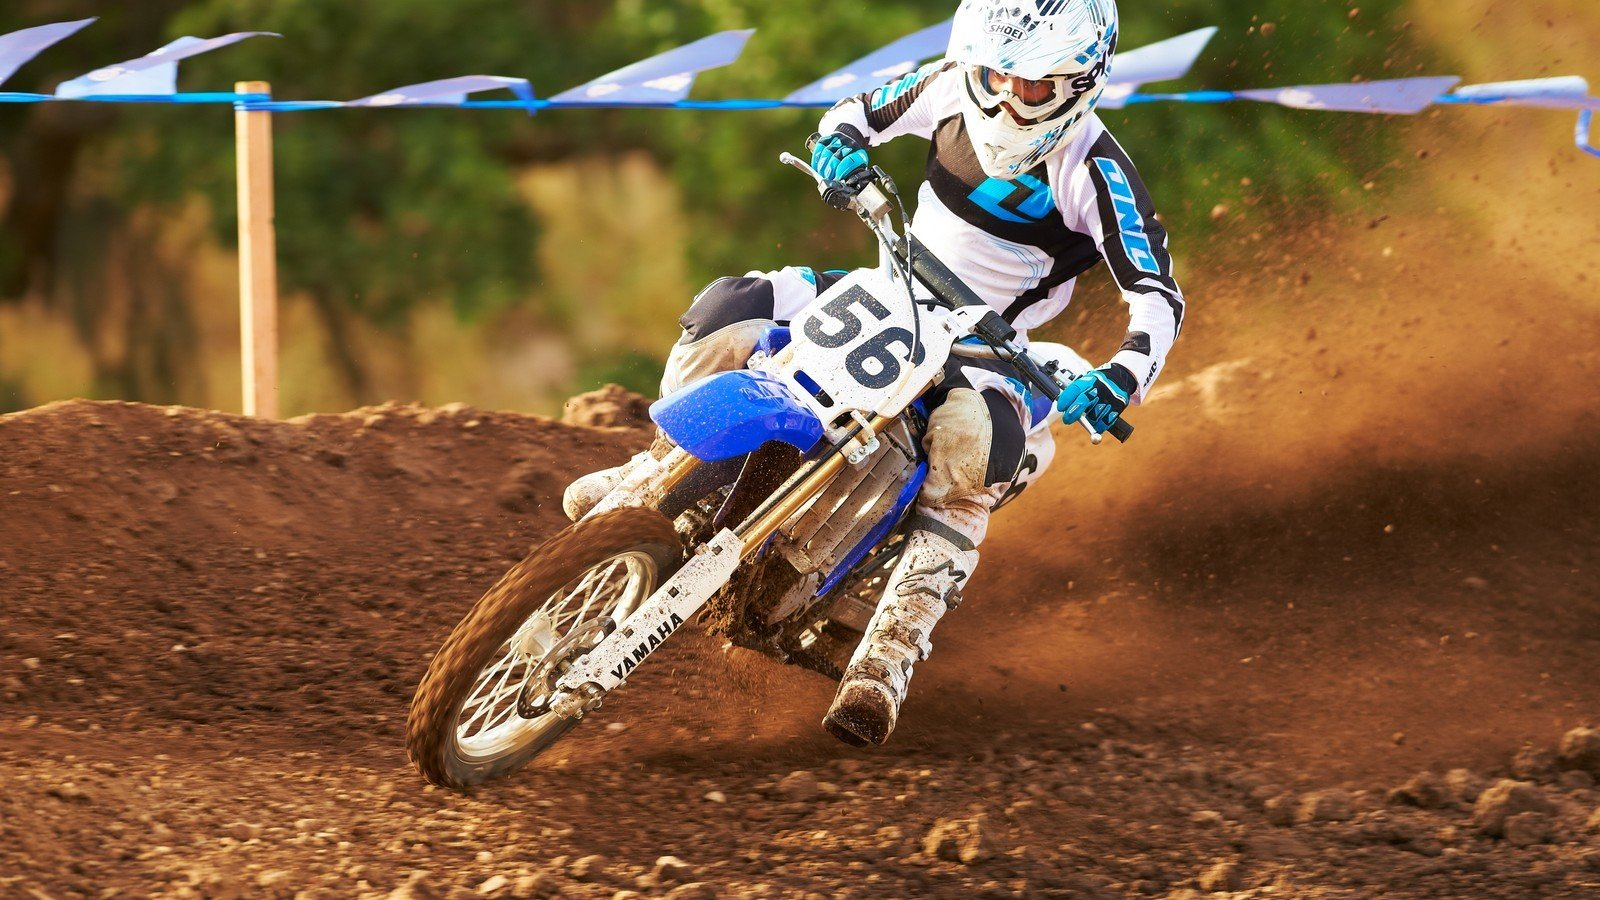 2013 yamaha yz85 picture 464551 motorcycle review for Yamaha yz85 top speed